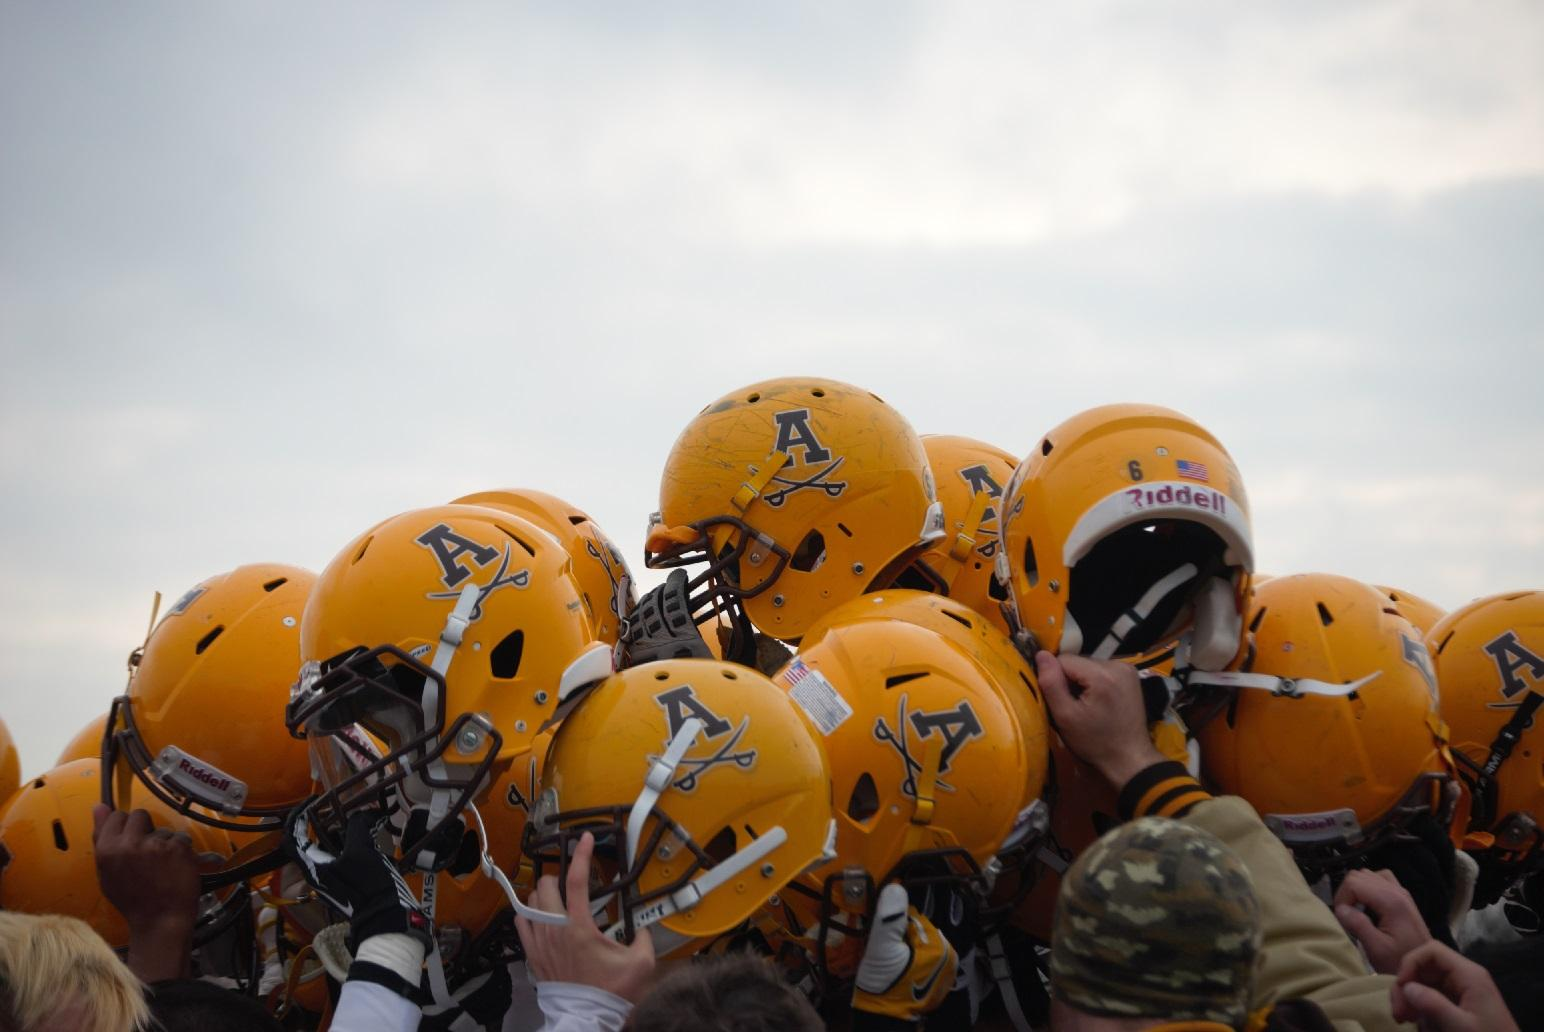 The football team raises their helmets after their loss to Clarkston.